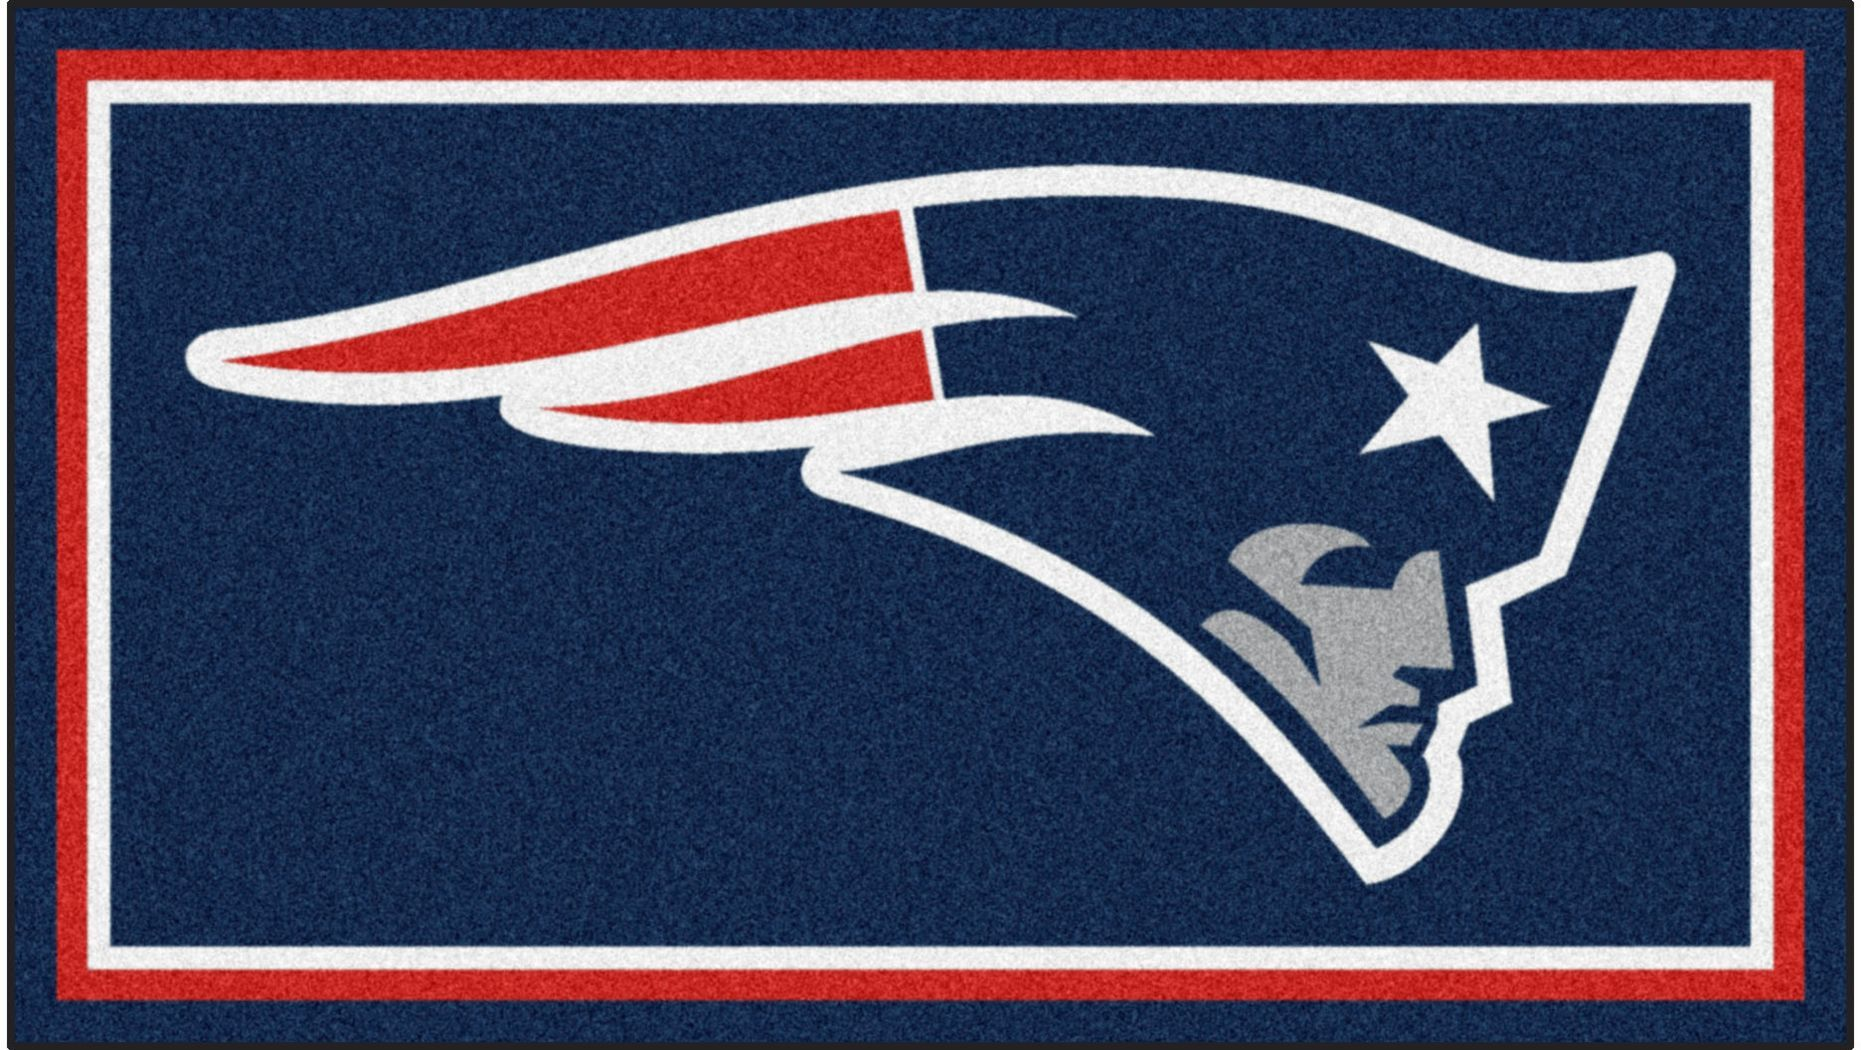 Nfl Big Game New England Patriots 3 X 5 Rug In 2020 New England Patriots Logo Nfl New England Patriots Patriots Logo